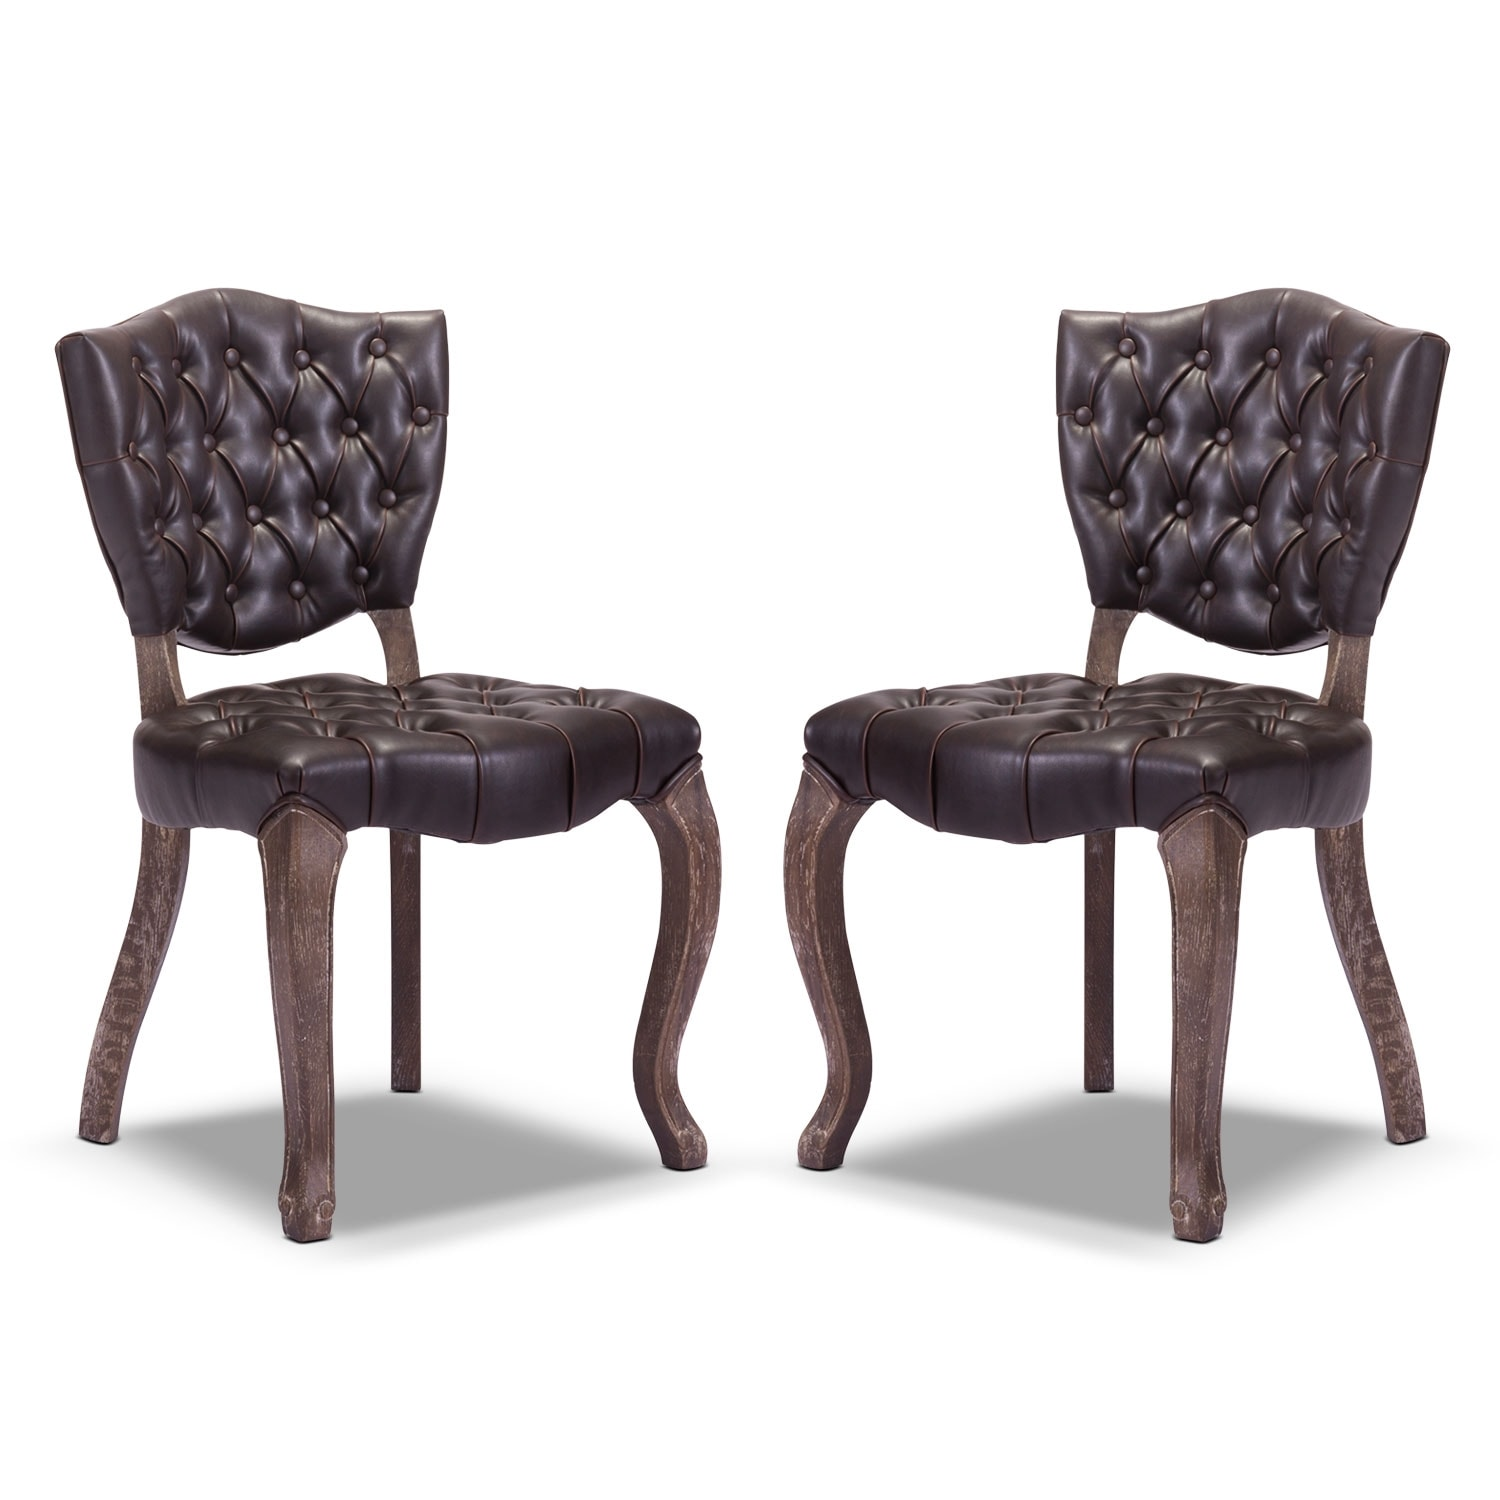 Shield 2-Pack Chairs - Brown